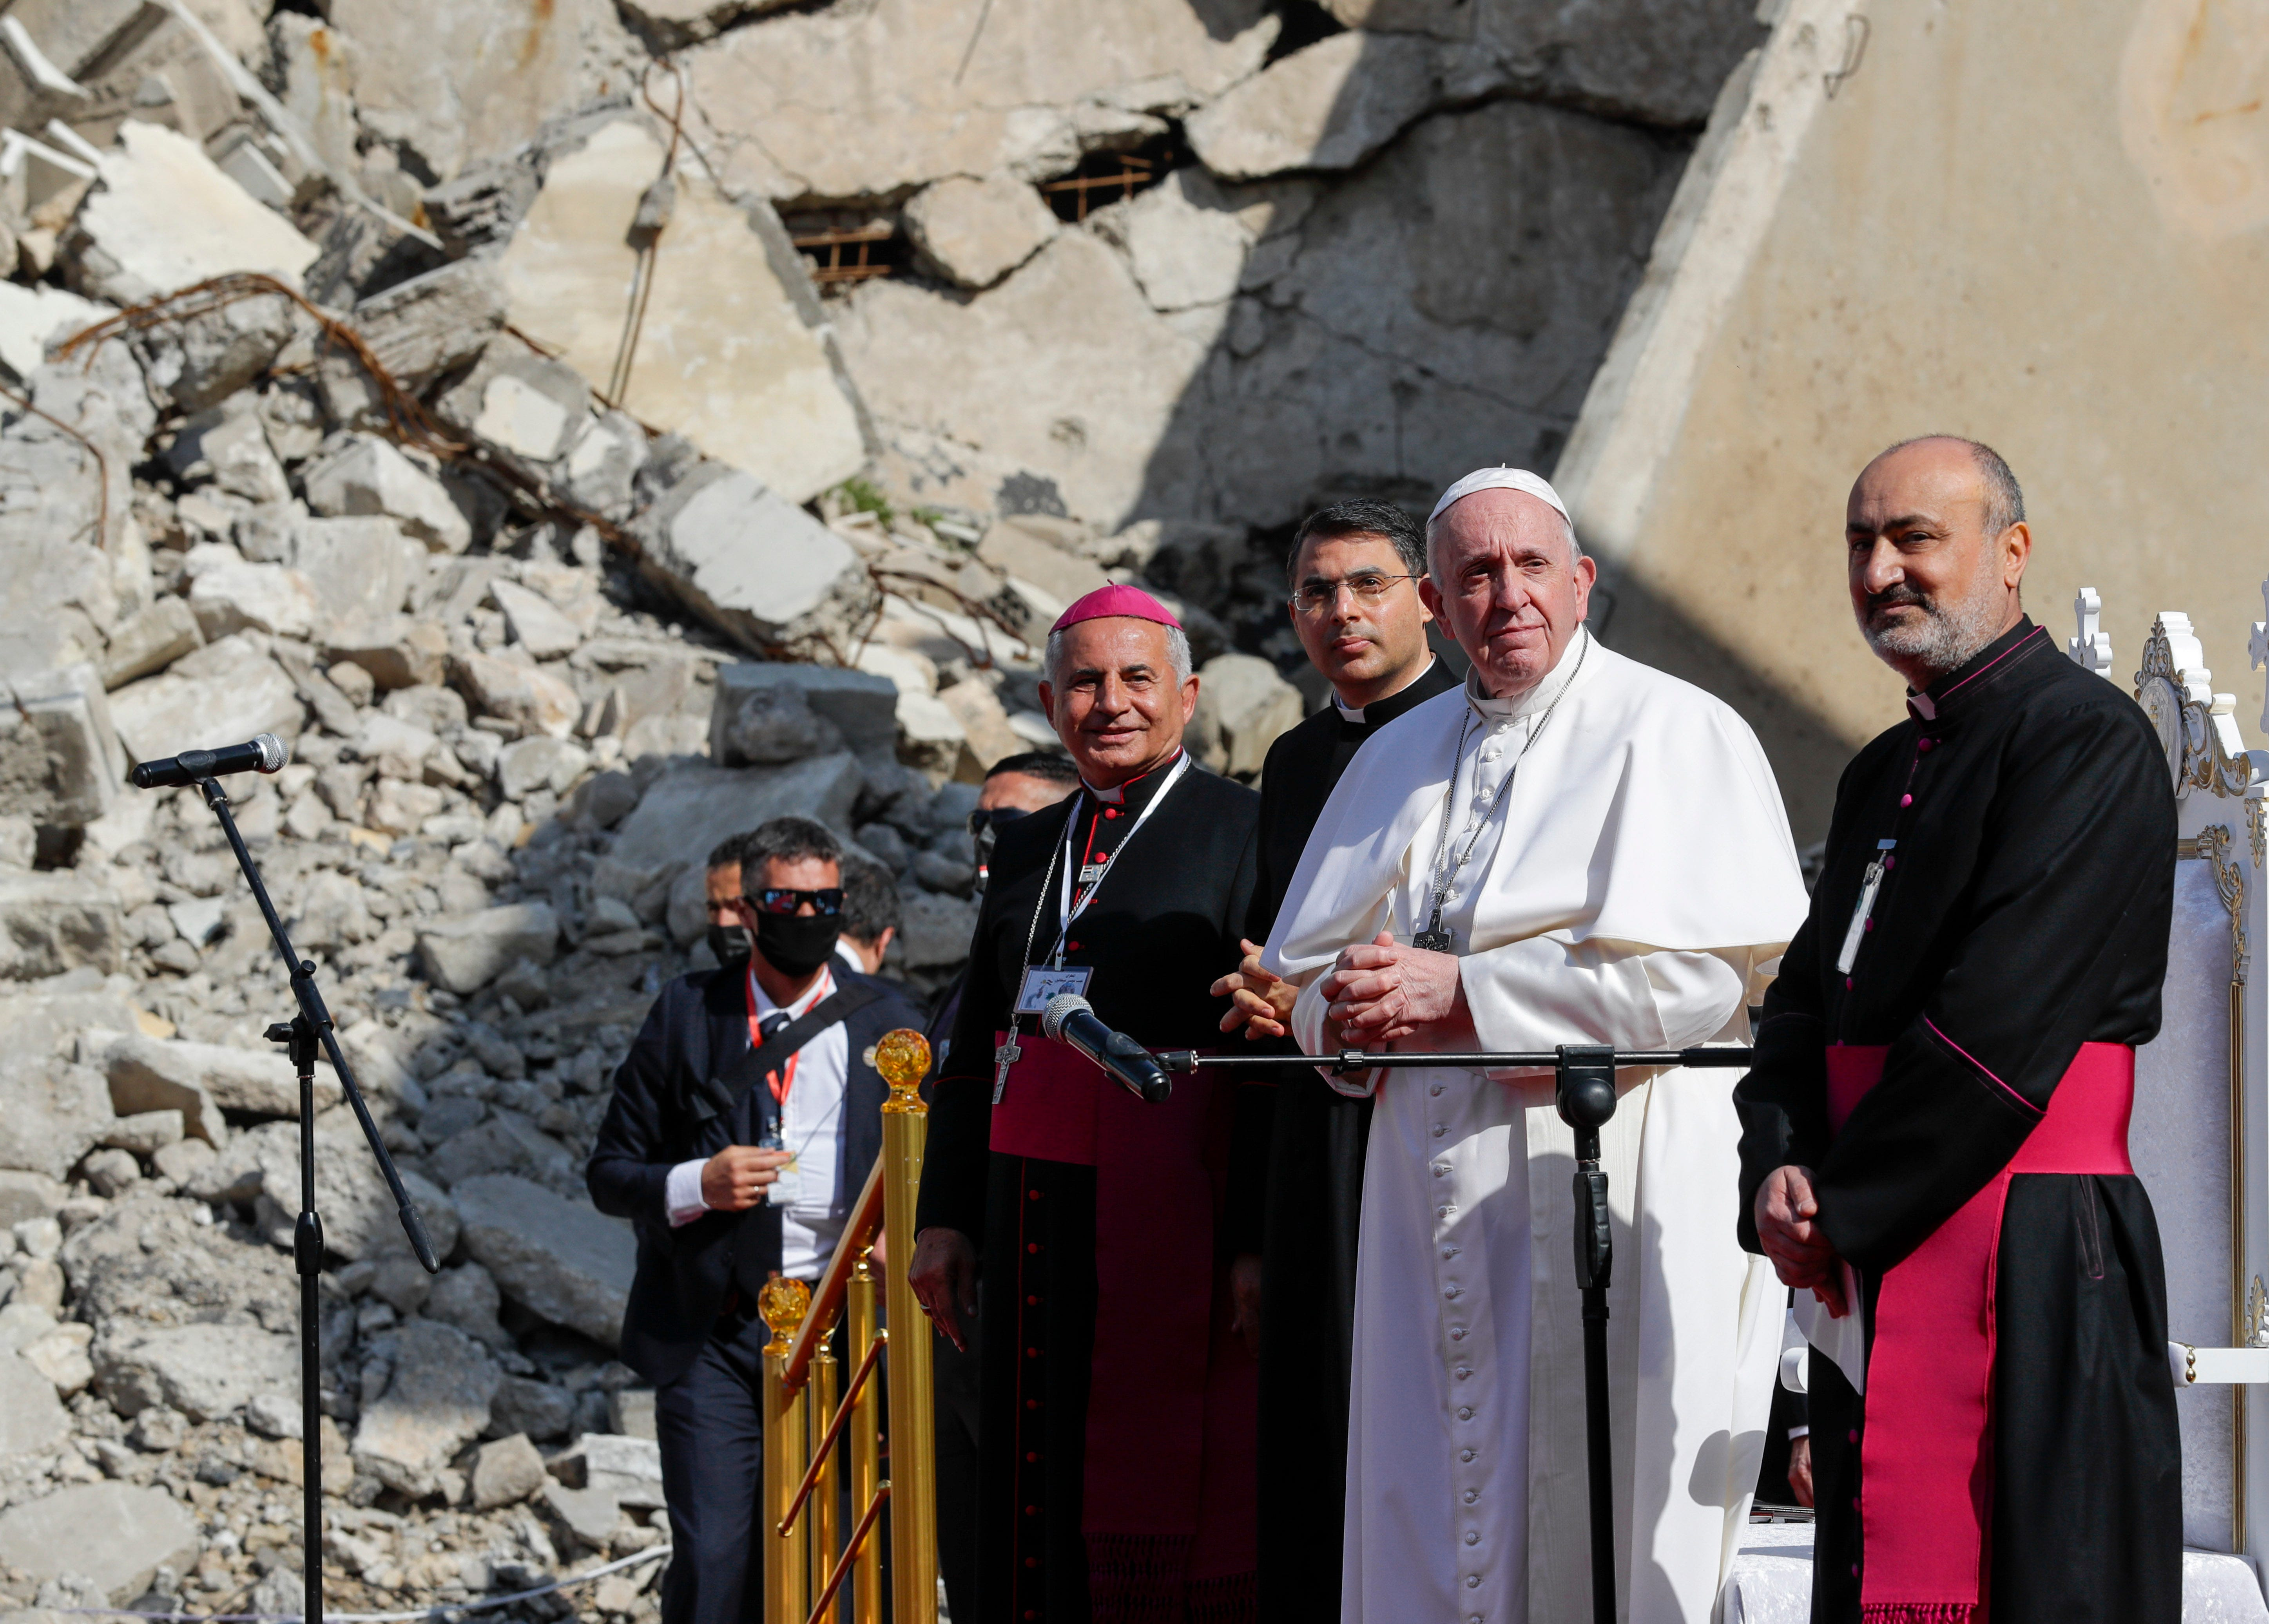 Where the Islamic State once ruled, Pope Francis calls on Christians to forgive, rebuild 2